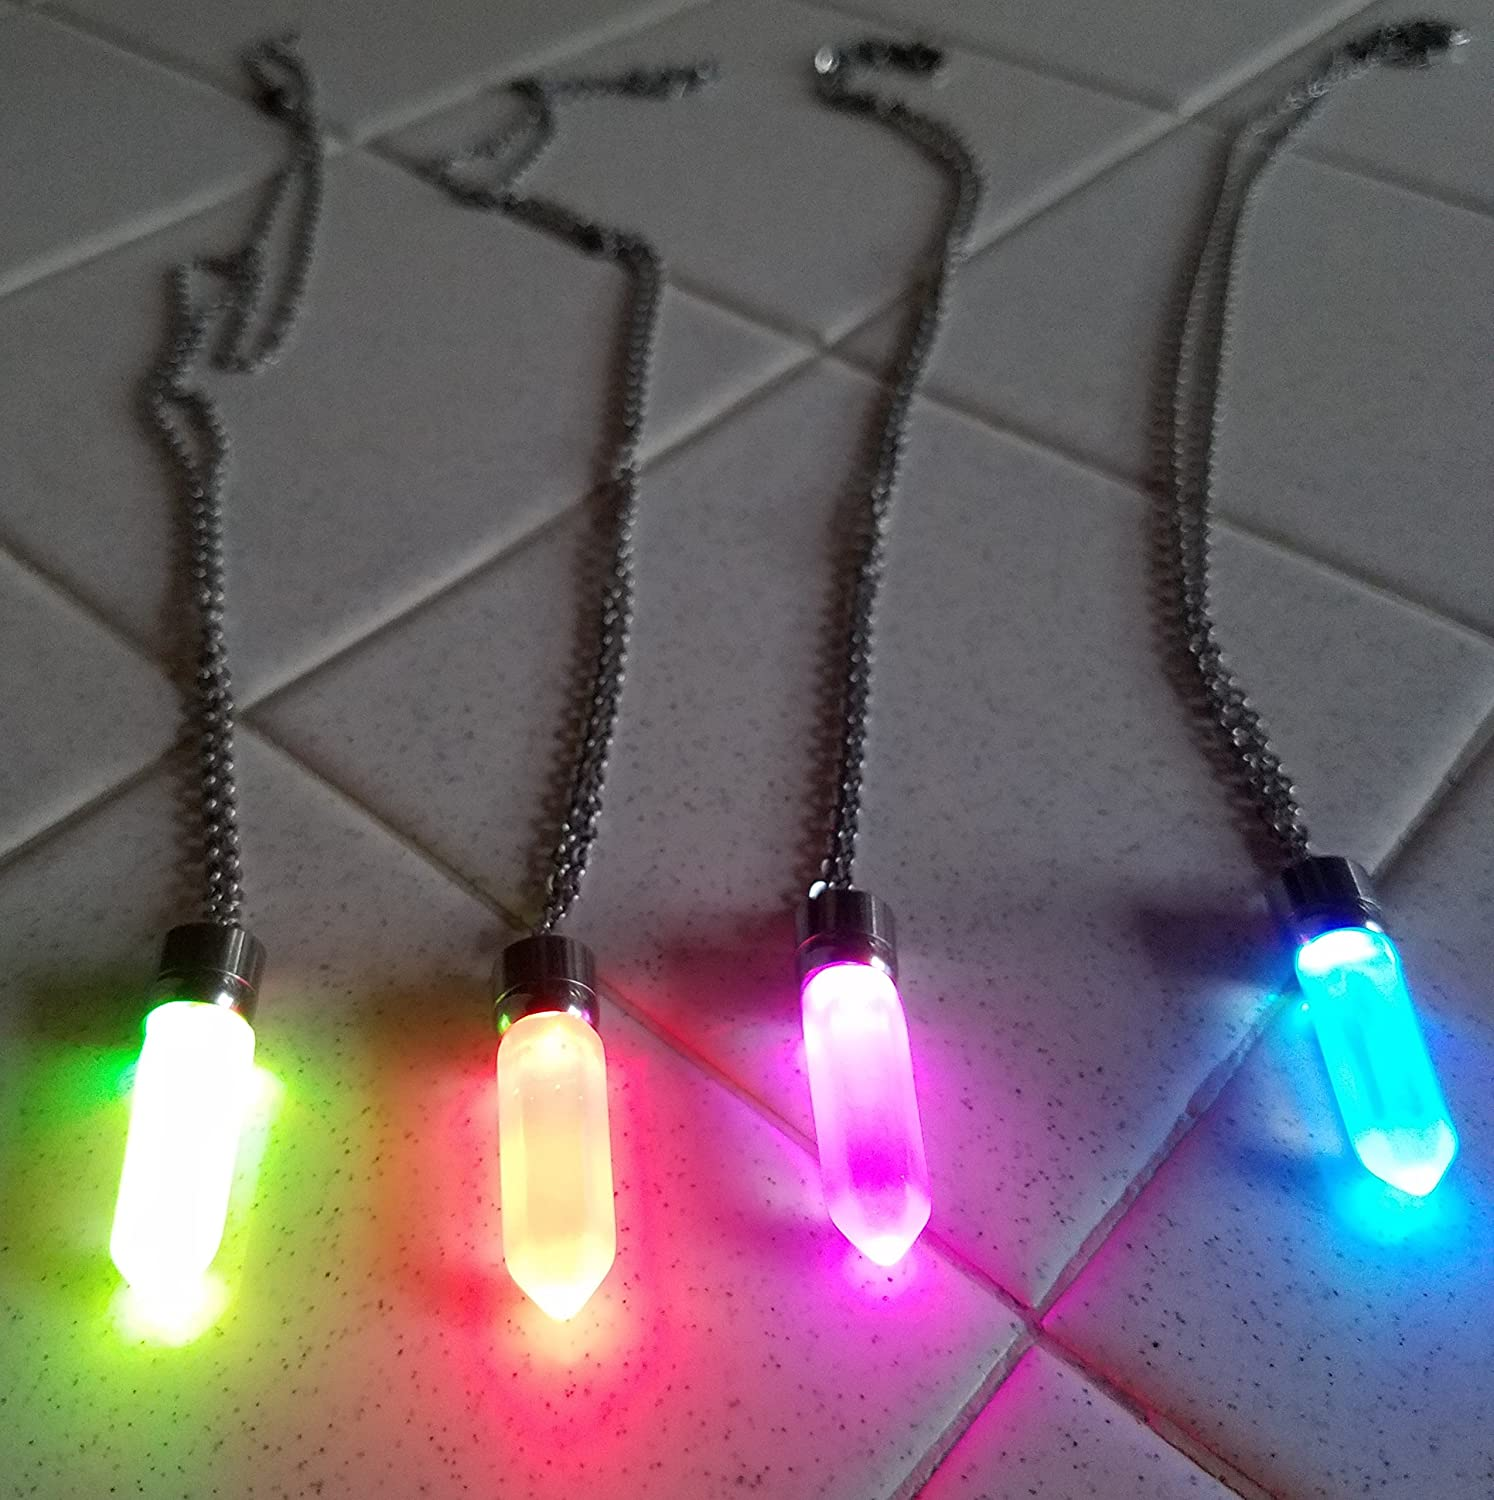 Glow crystal jewelry Necklace multicolor LED Light up Crystal Pendant Necklace